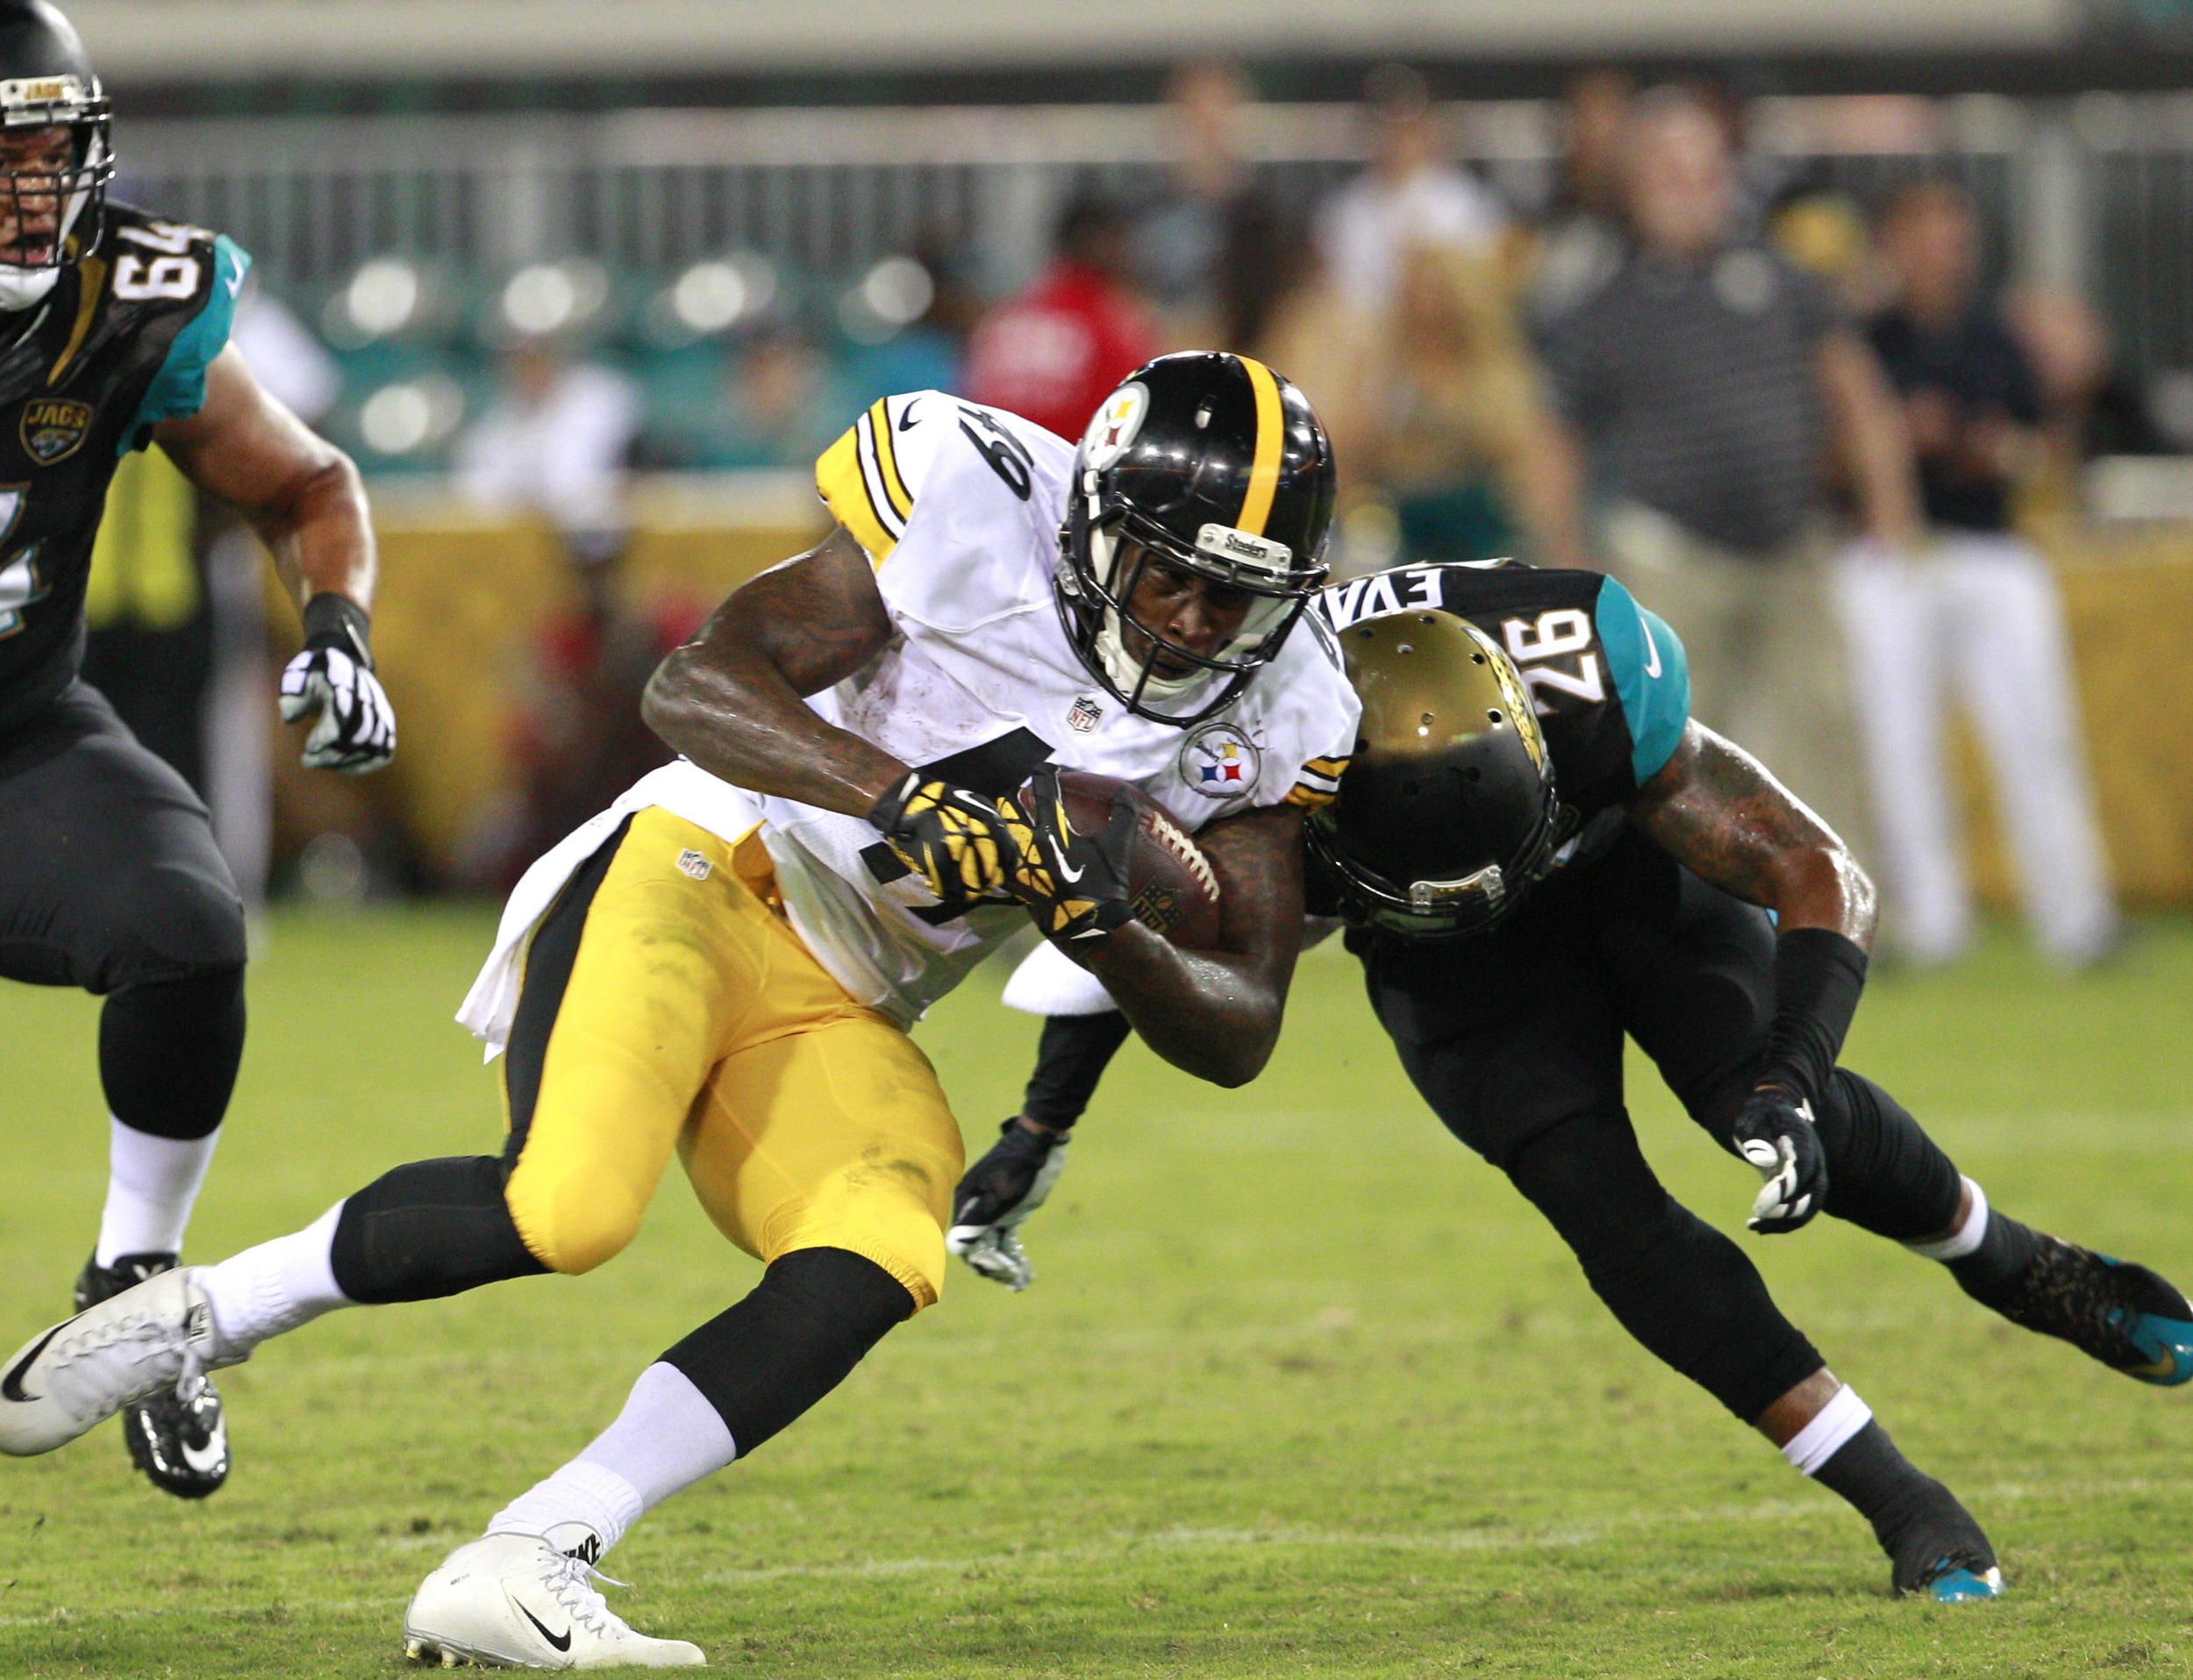 Pittsburgh Steelers running back Jawon Chisholm (49) runs as Jacksonville Jaguars free safety Josh Evans (26) makes a tackle during the second half of a preseason NFL football game. Notice how the tackler is leading with his head. This technique has been directly linked to concussion injuries and is why the NFL is attempting to make the chop tackle technique more prevalent in the sport.  Image supplied by Action Images/Reinhold Matay.